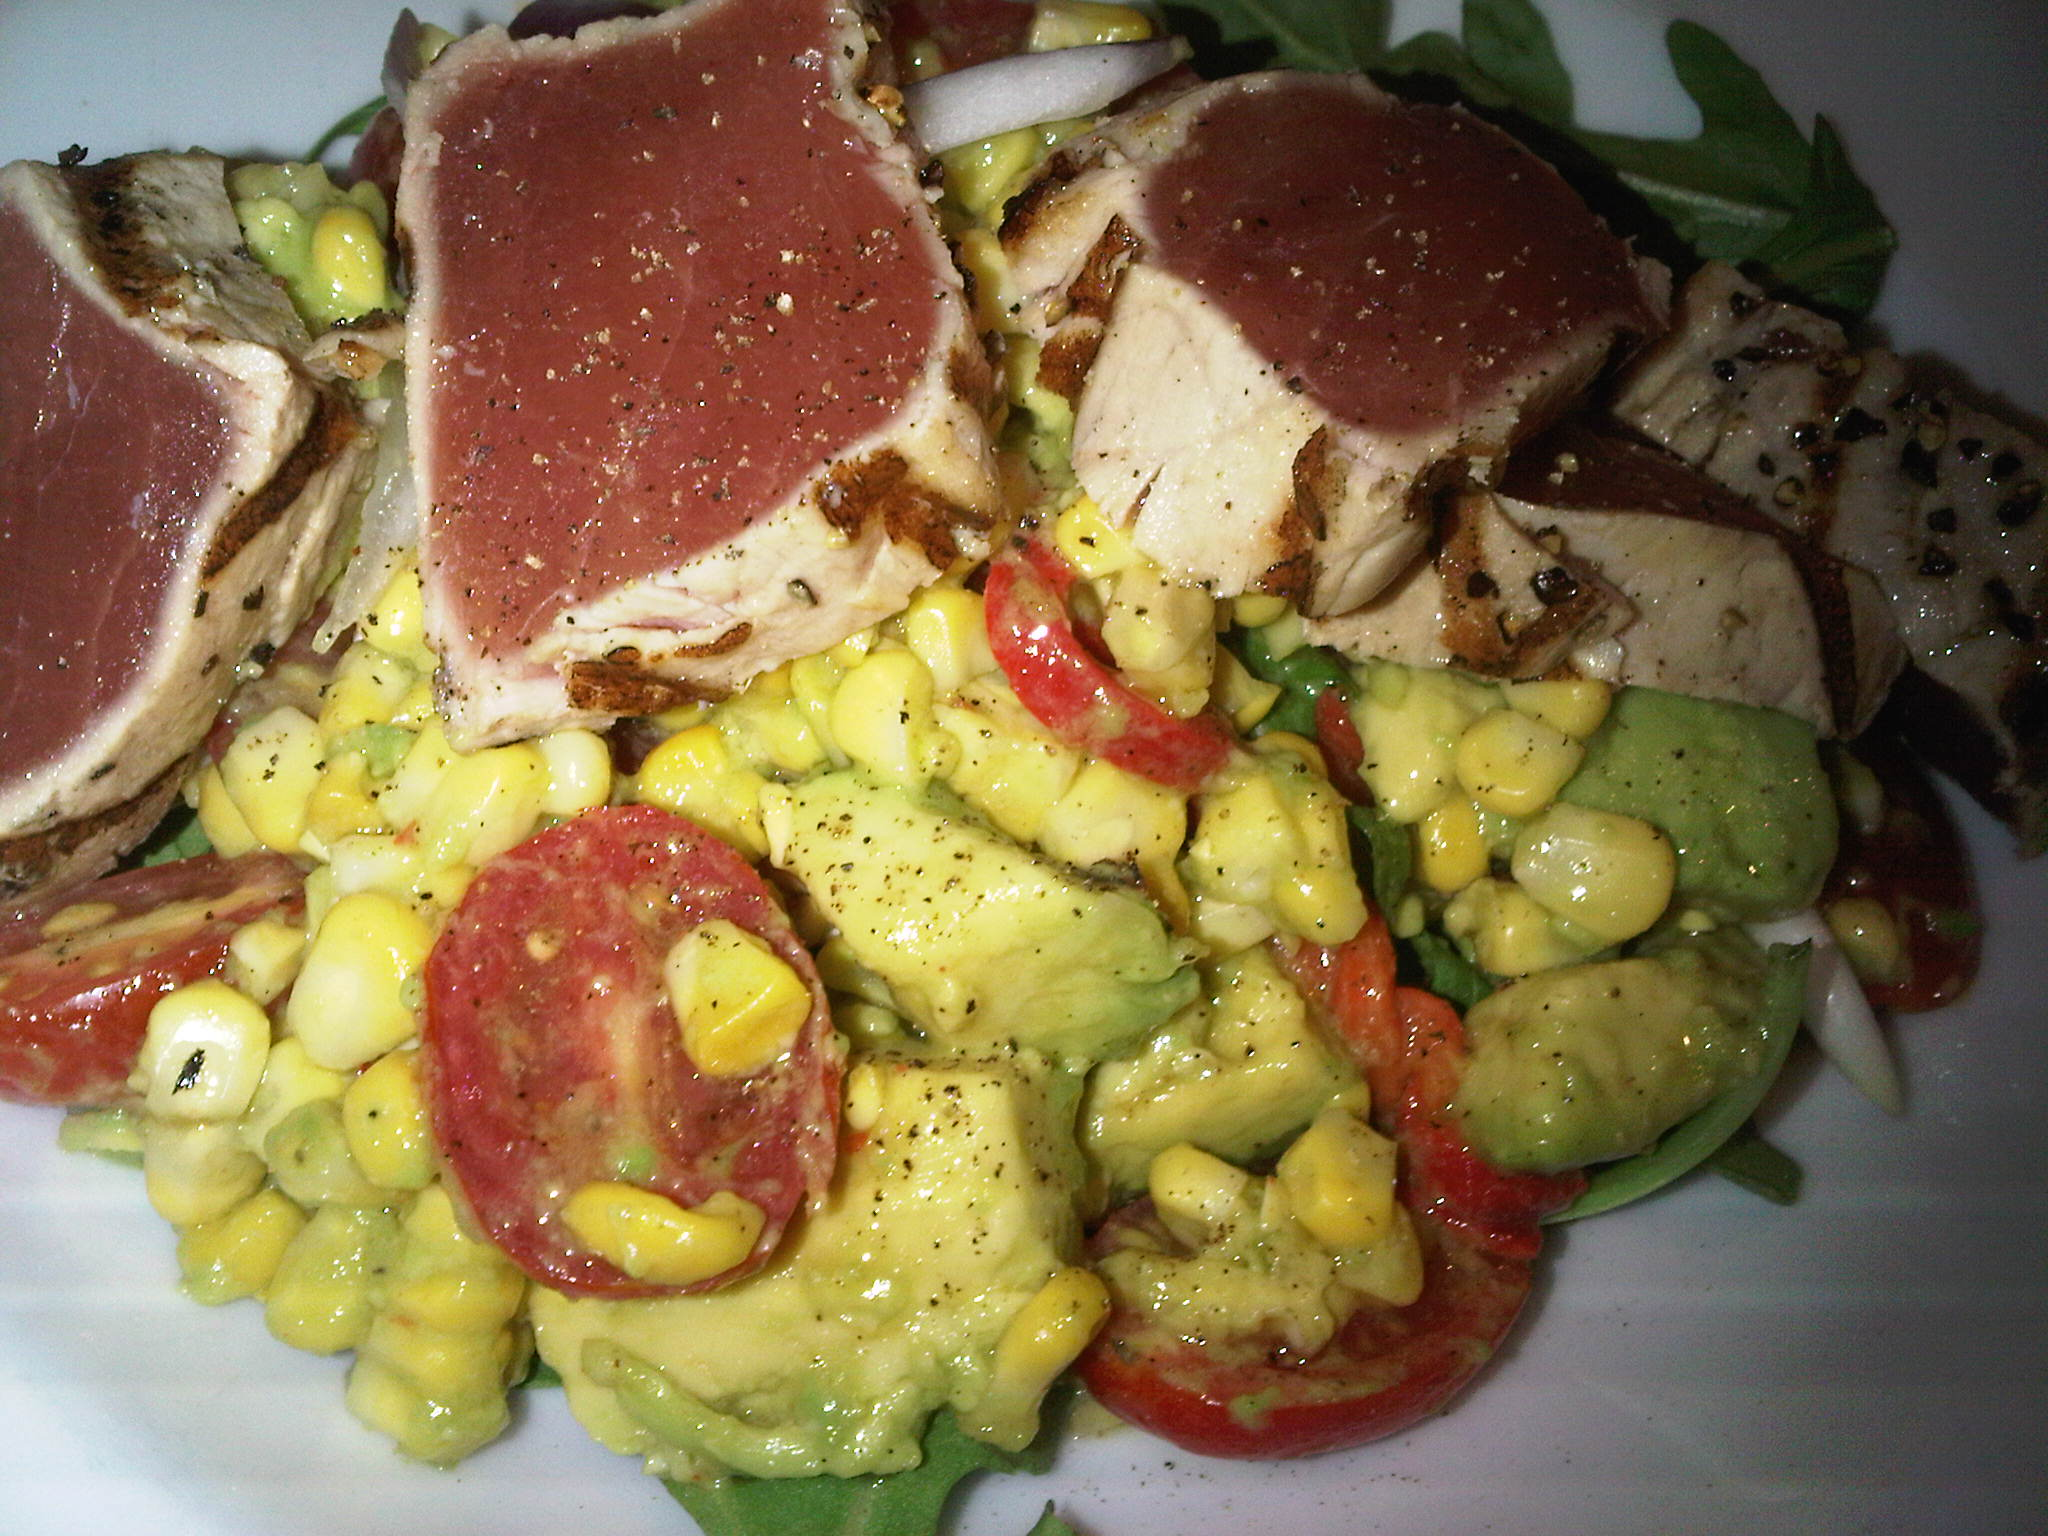 Aug 13 Brunch... Tuna with Avocado, Corn & Arugula